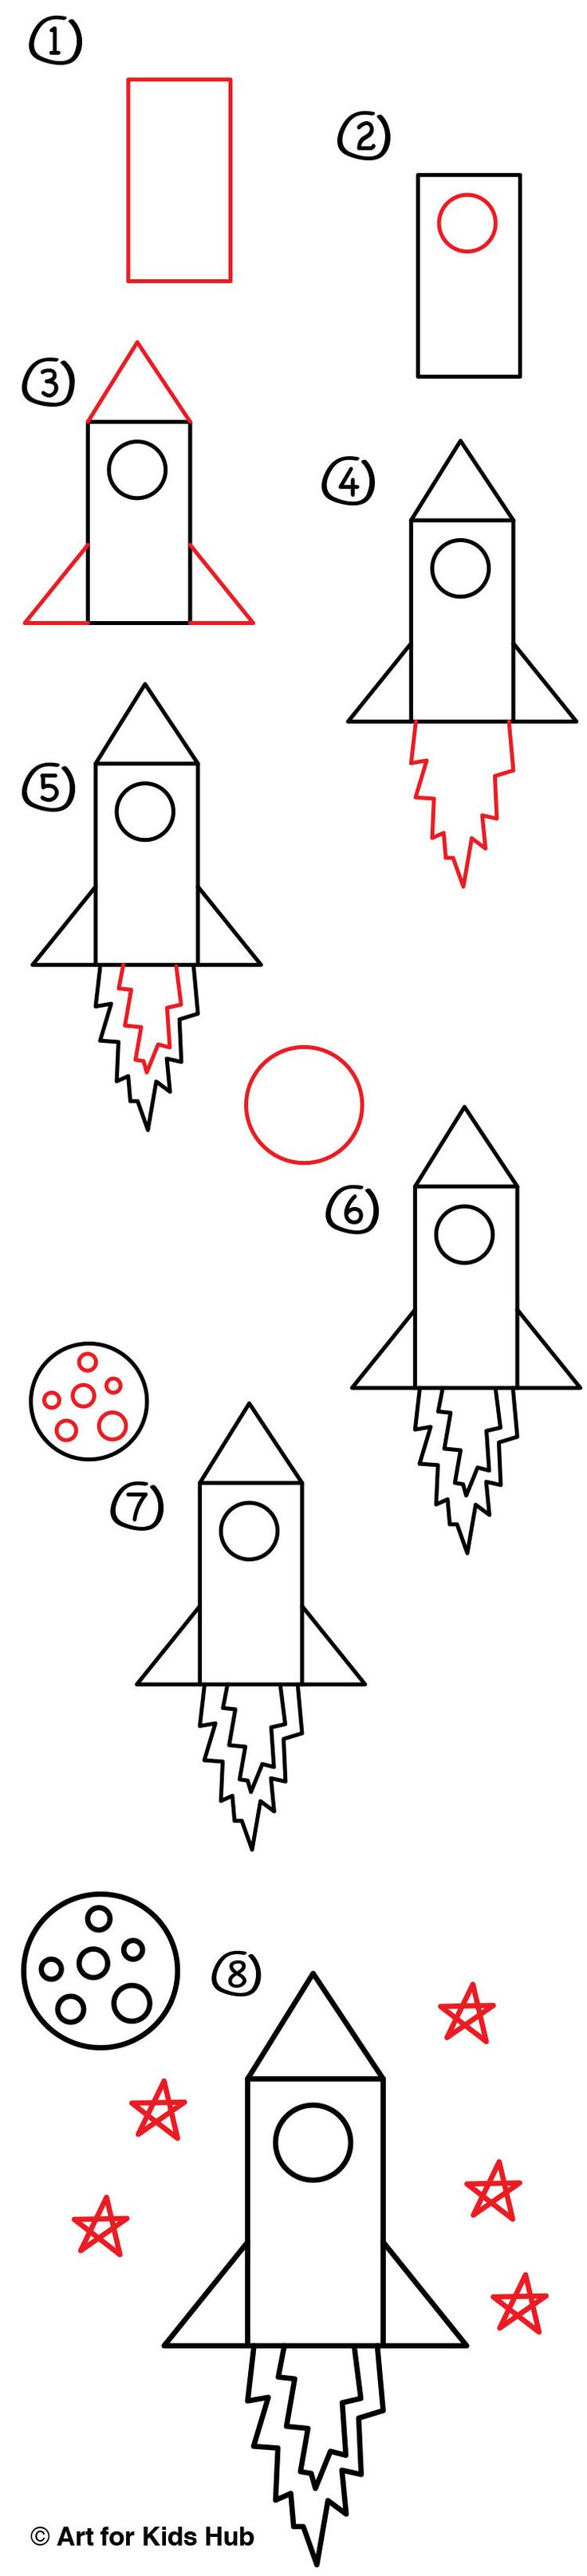 Learn how to draw a rocket with your young artists! This lesson focuses on primary colors, shapes, cutting and gluing.